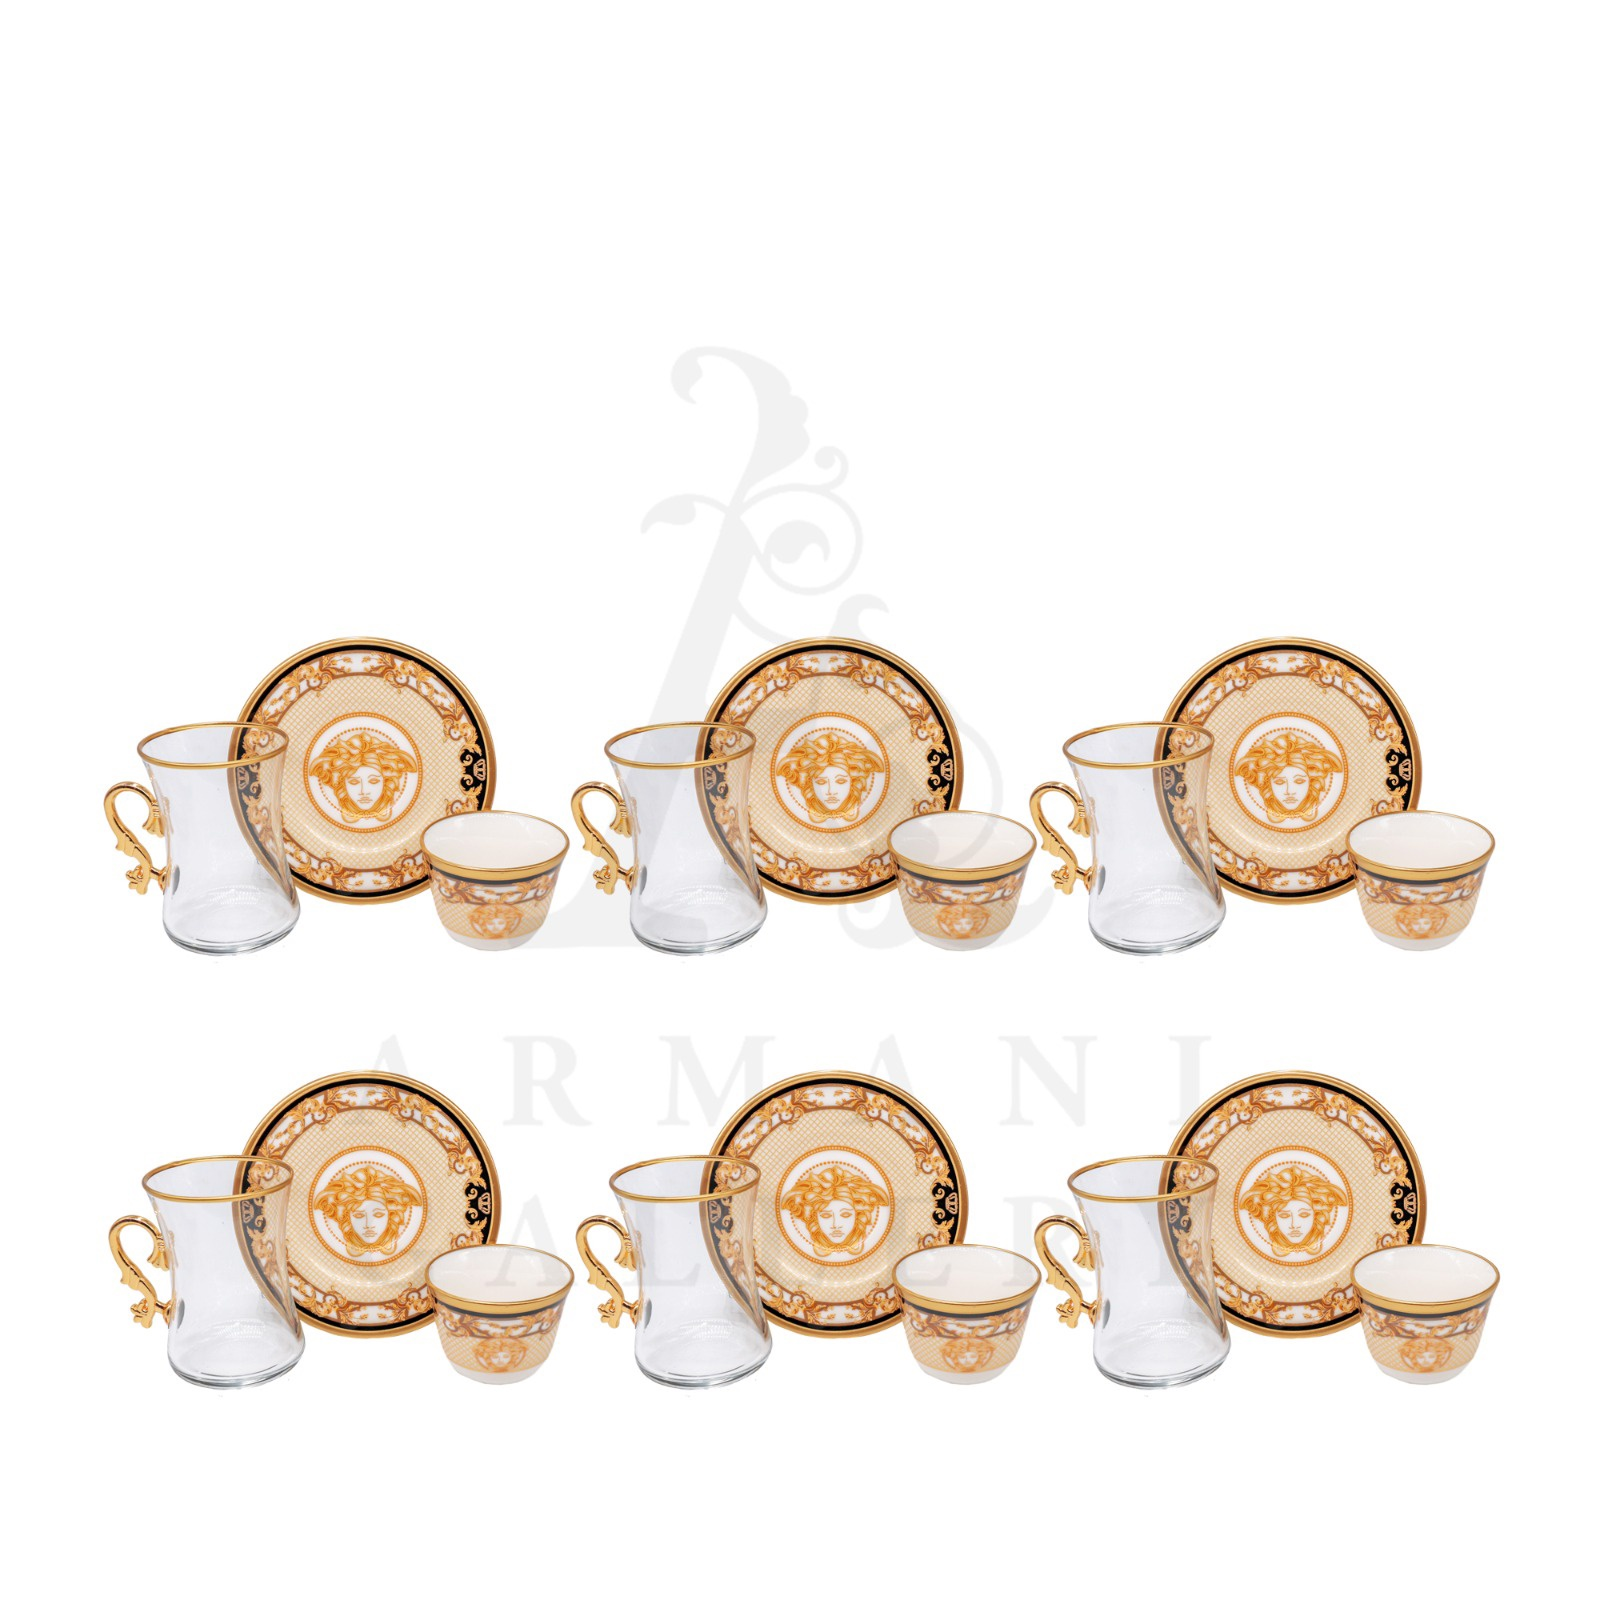 Buy Coffee and Tea Cup with Handle Set Versace Criss Cross 18 Pcs